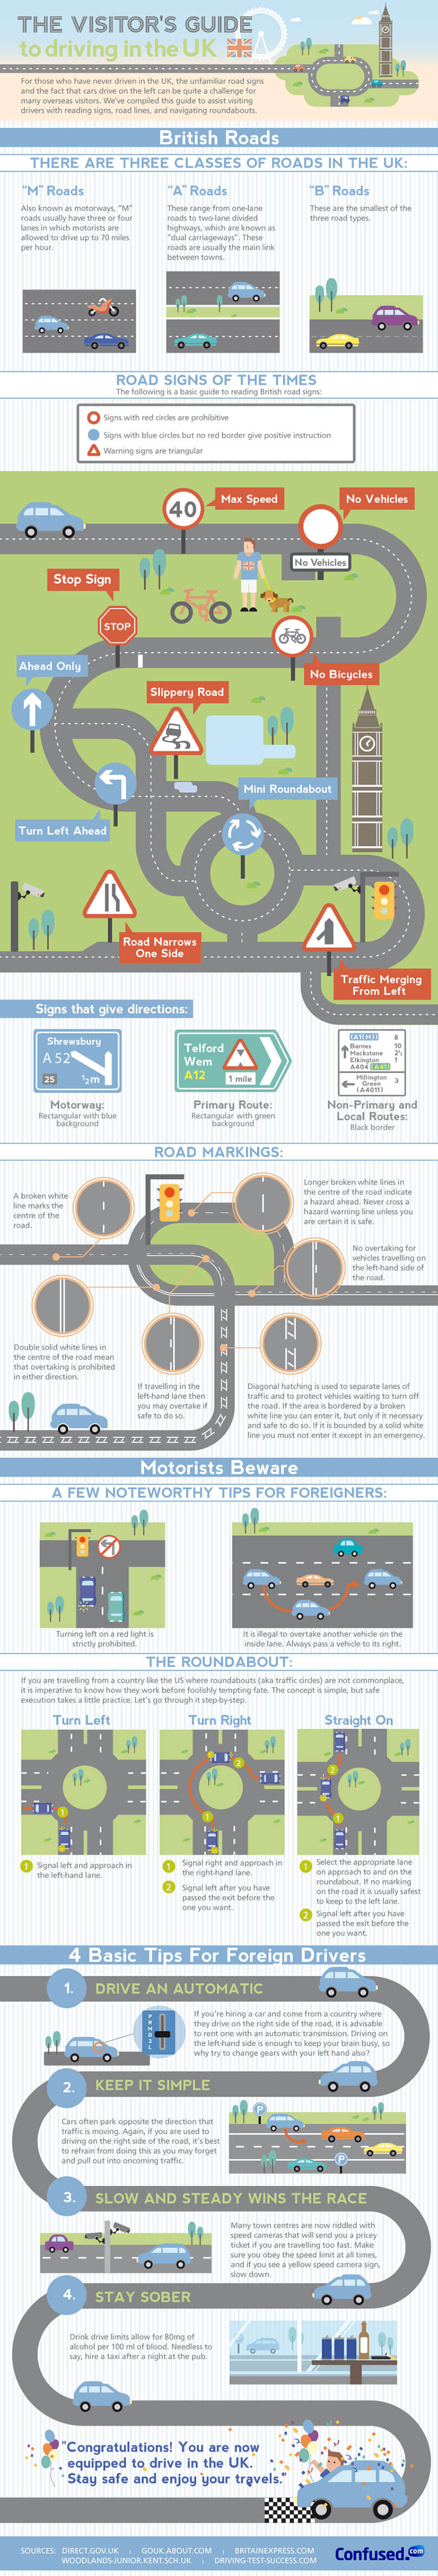 Visitor's guide to driving in the UK